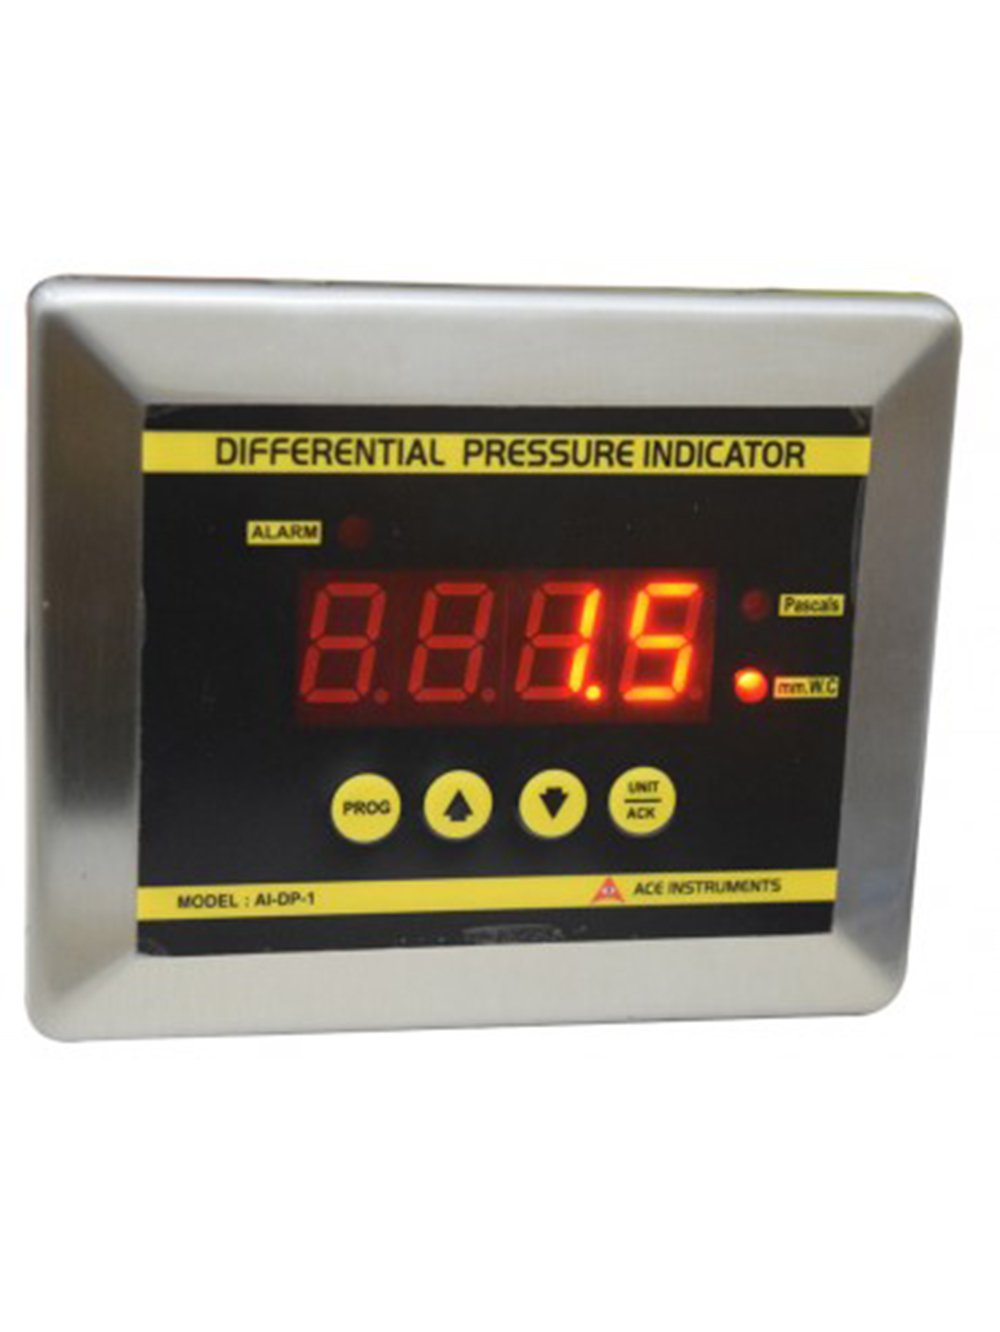 Digital Differential Pressure Indicator Along with Calibration